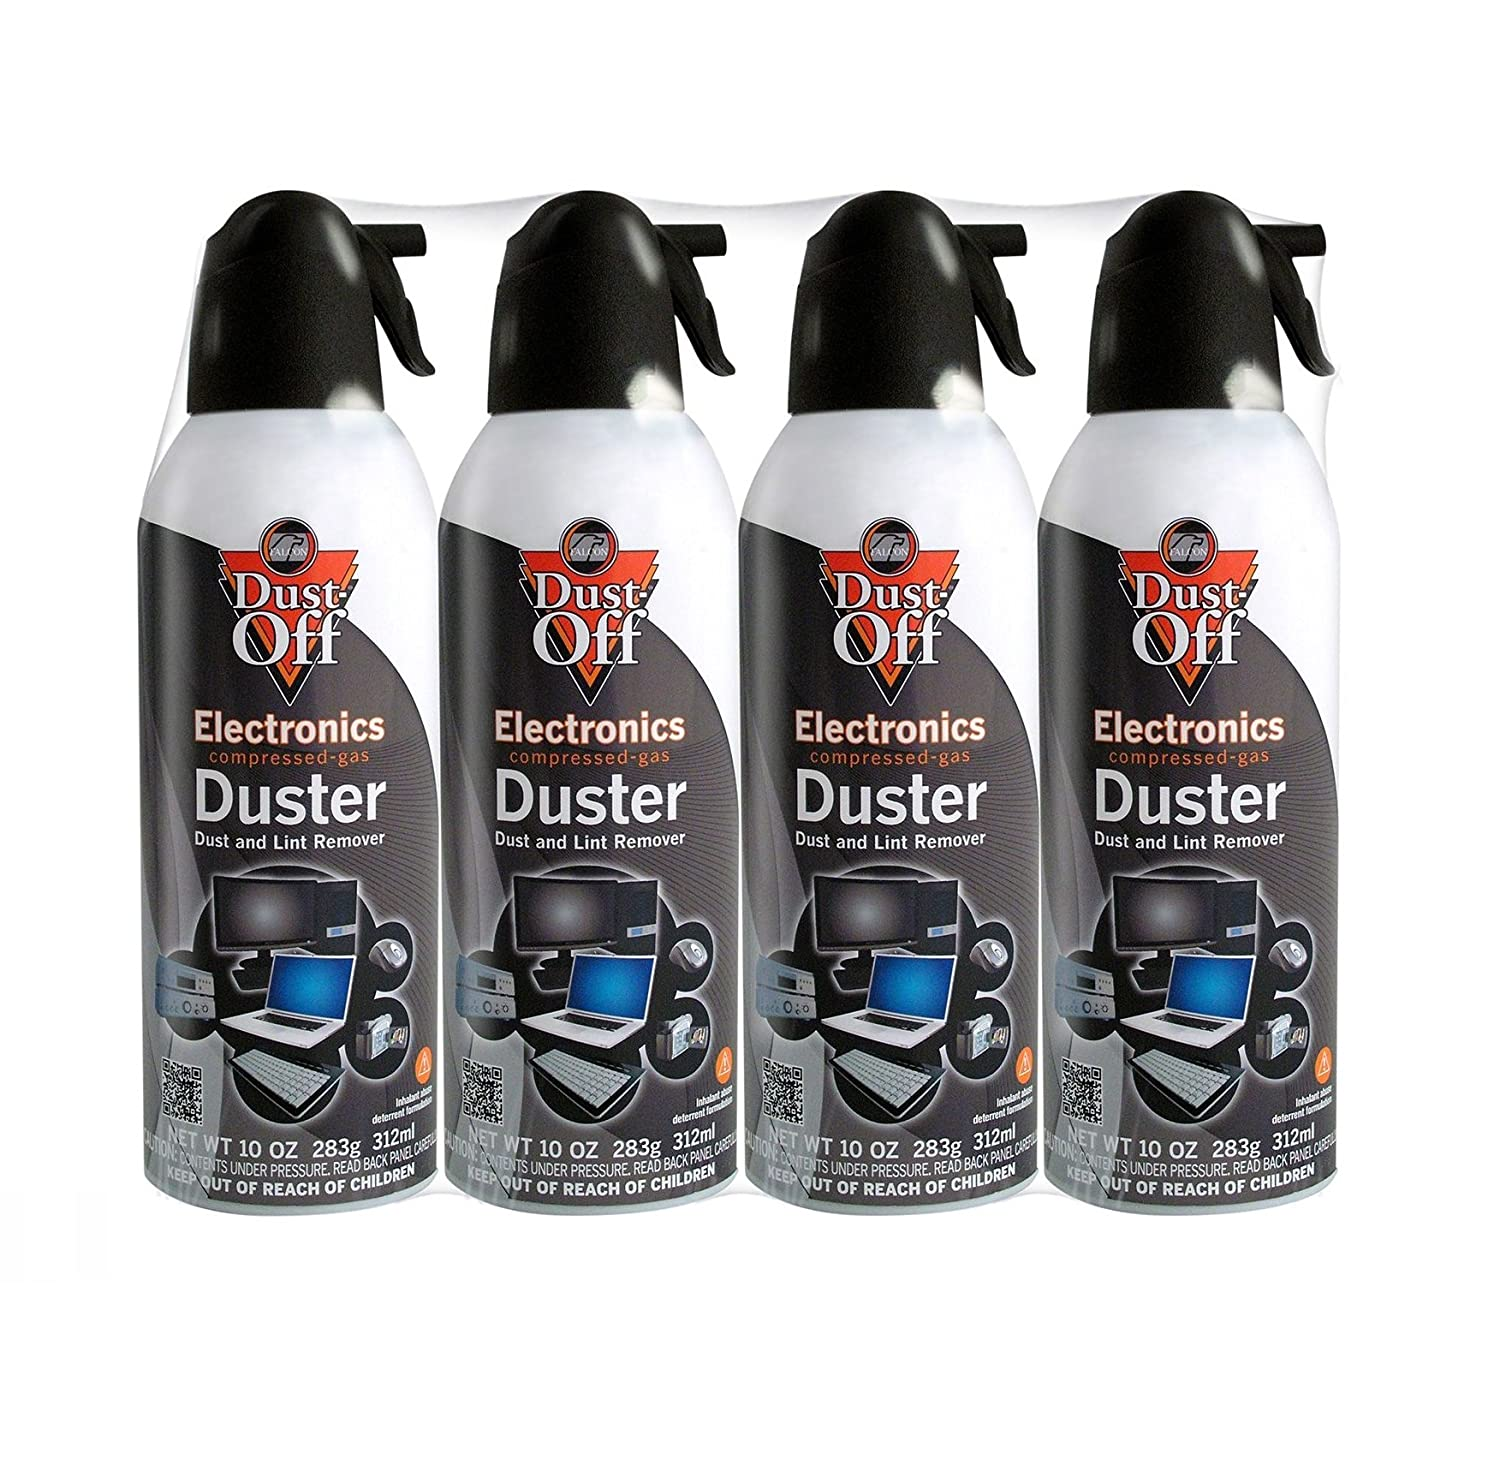 Compressed air is good for drying and blowing out debris.